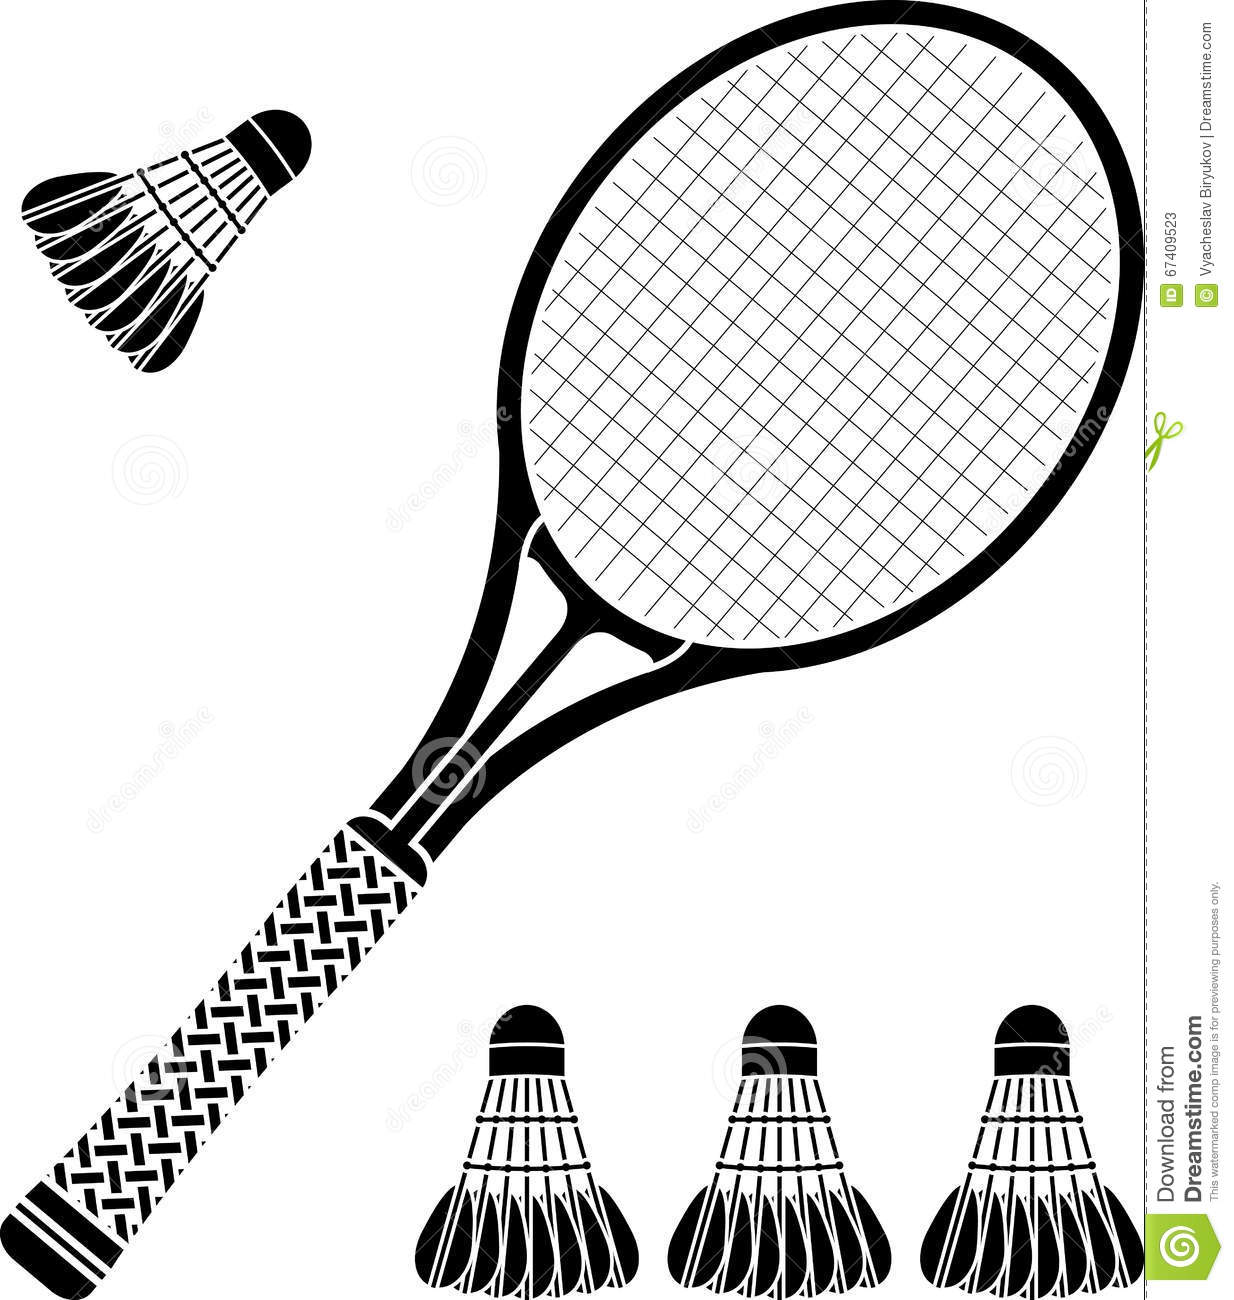 Stencil Of Racket And Badminton Shuttlecocks Stock Vector